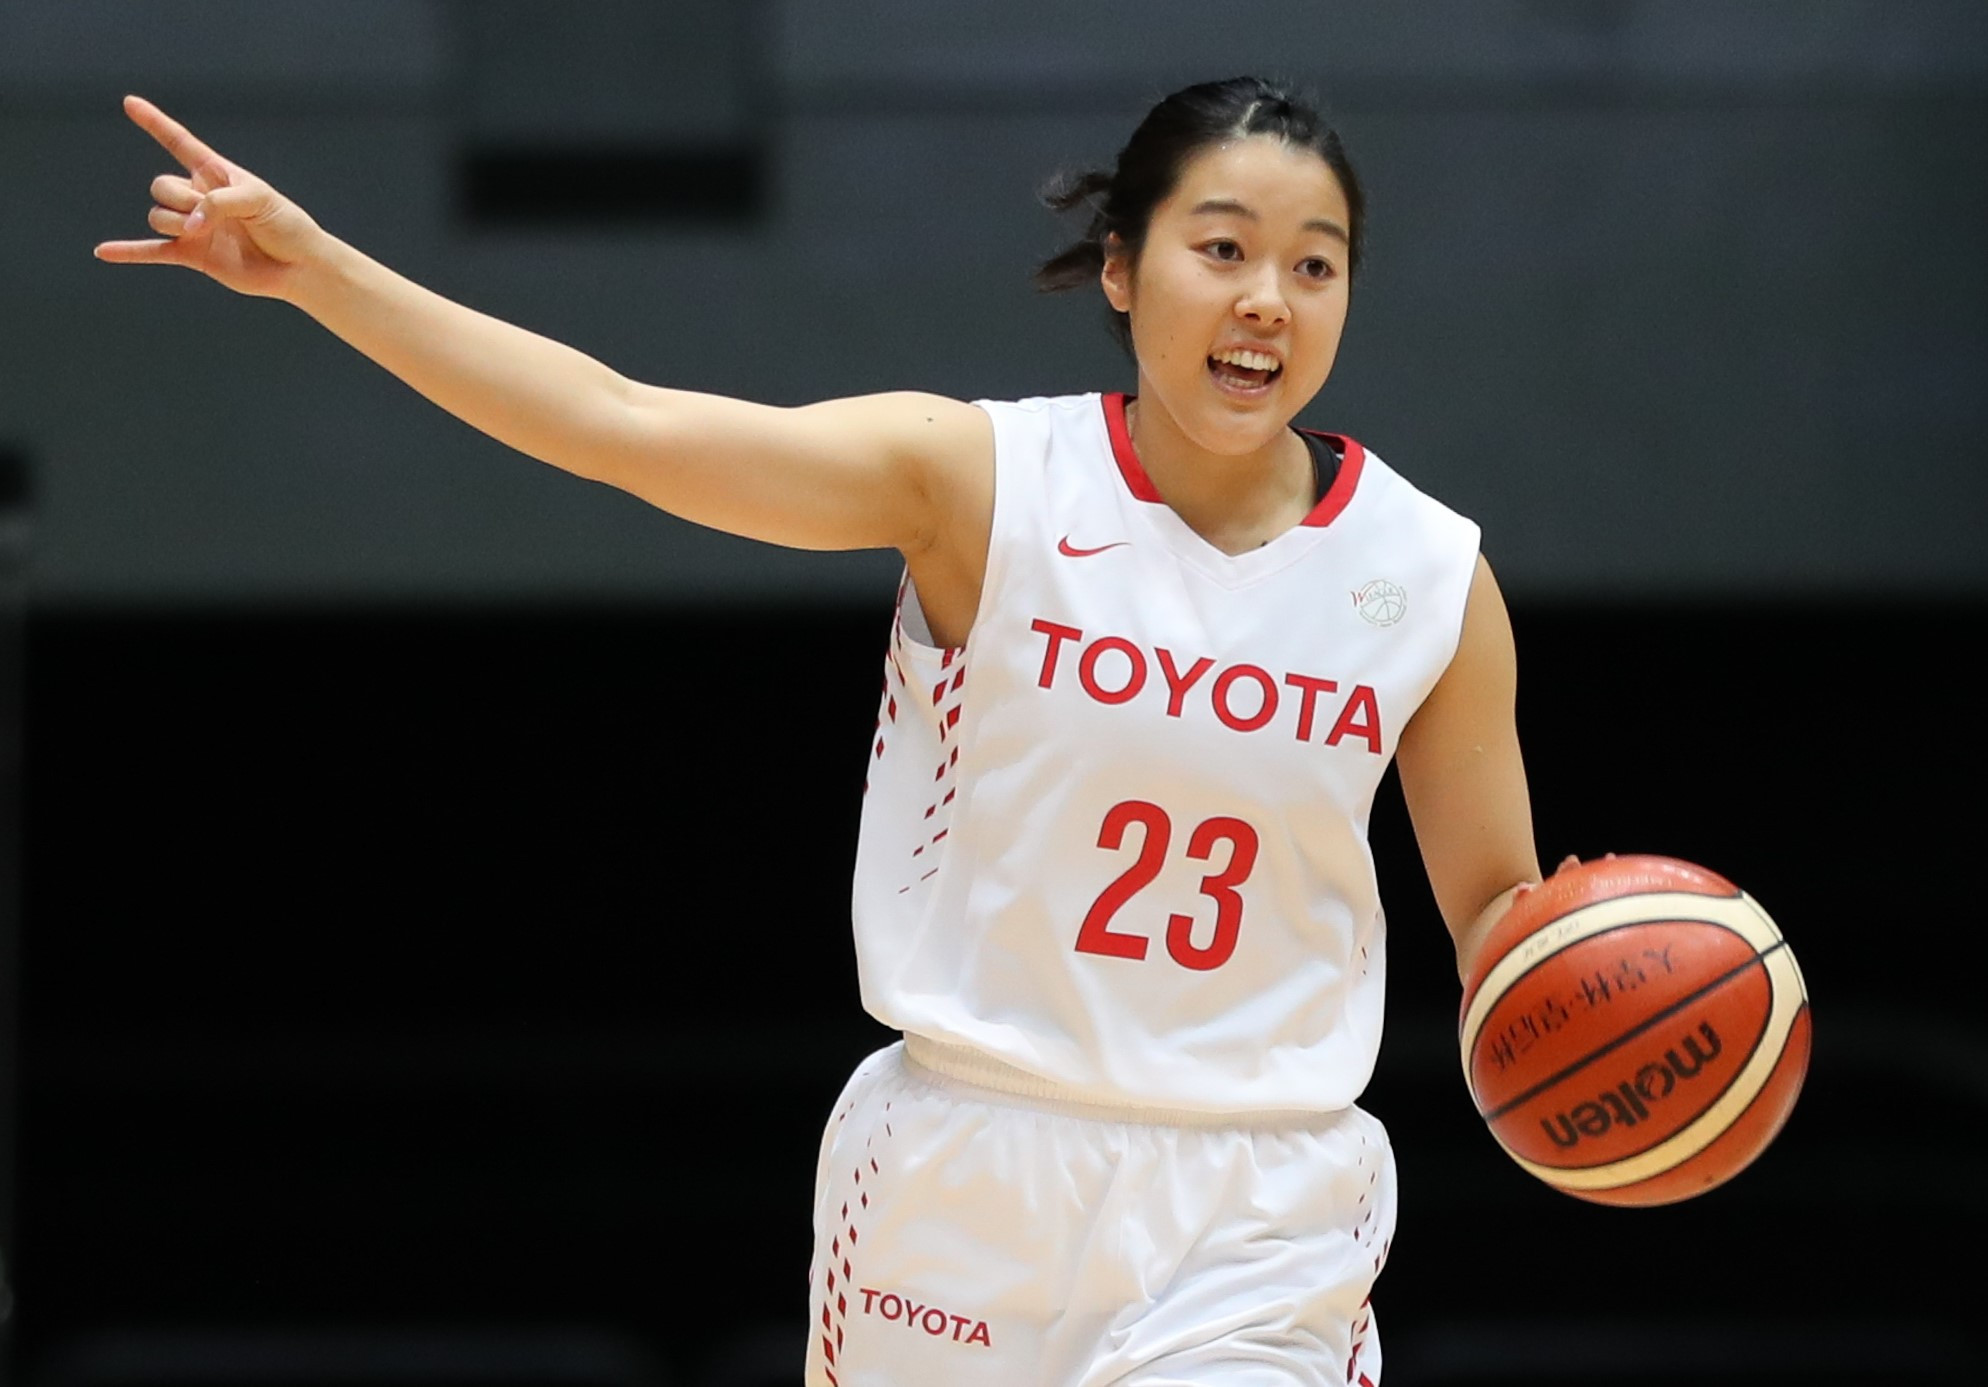 Mongolian men and Japan's women make super starts to 3x3 Olympic qualifier